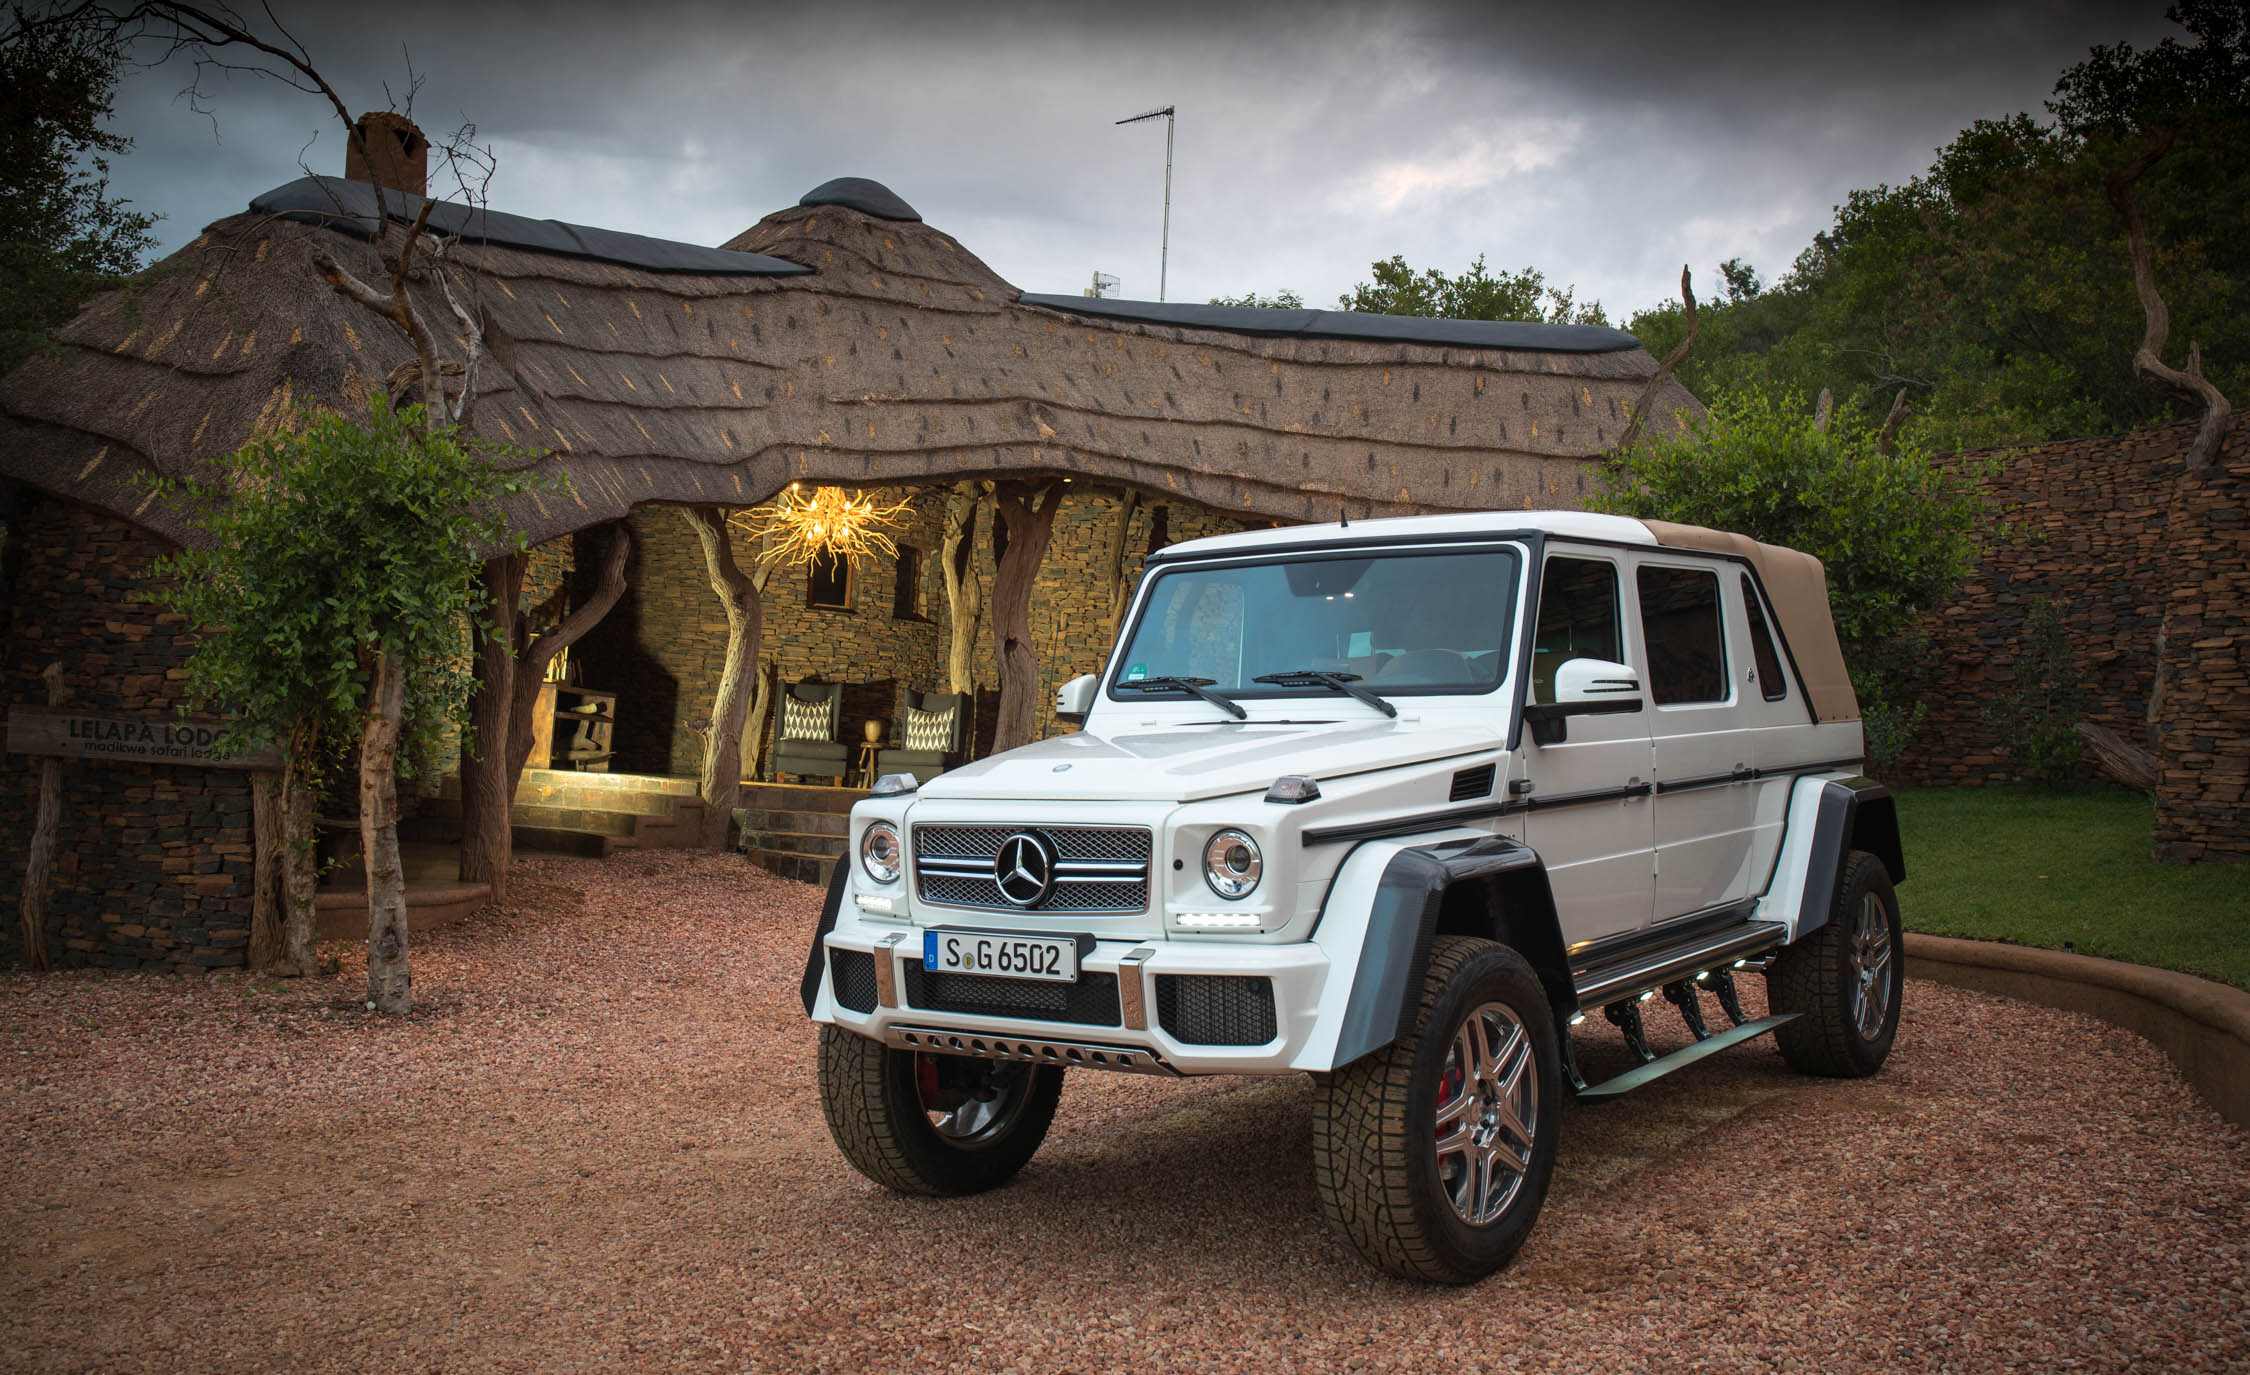 2018 Mercedes Maybach G650 Landaulet White Exterior (Photo 8 of 52)